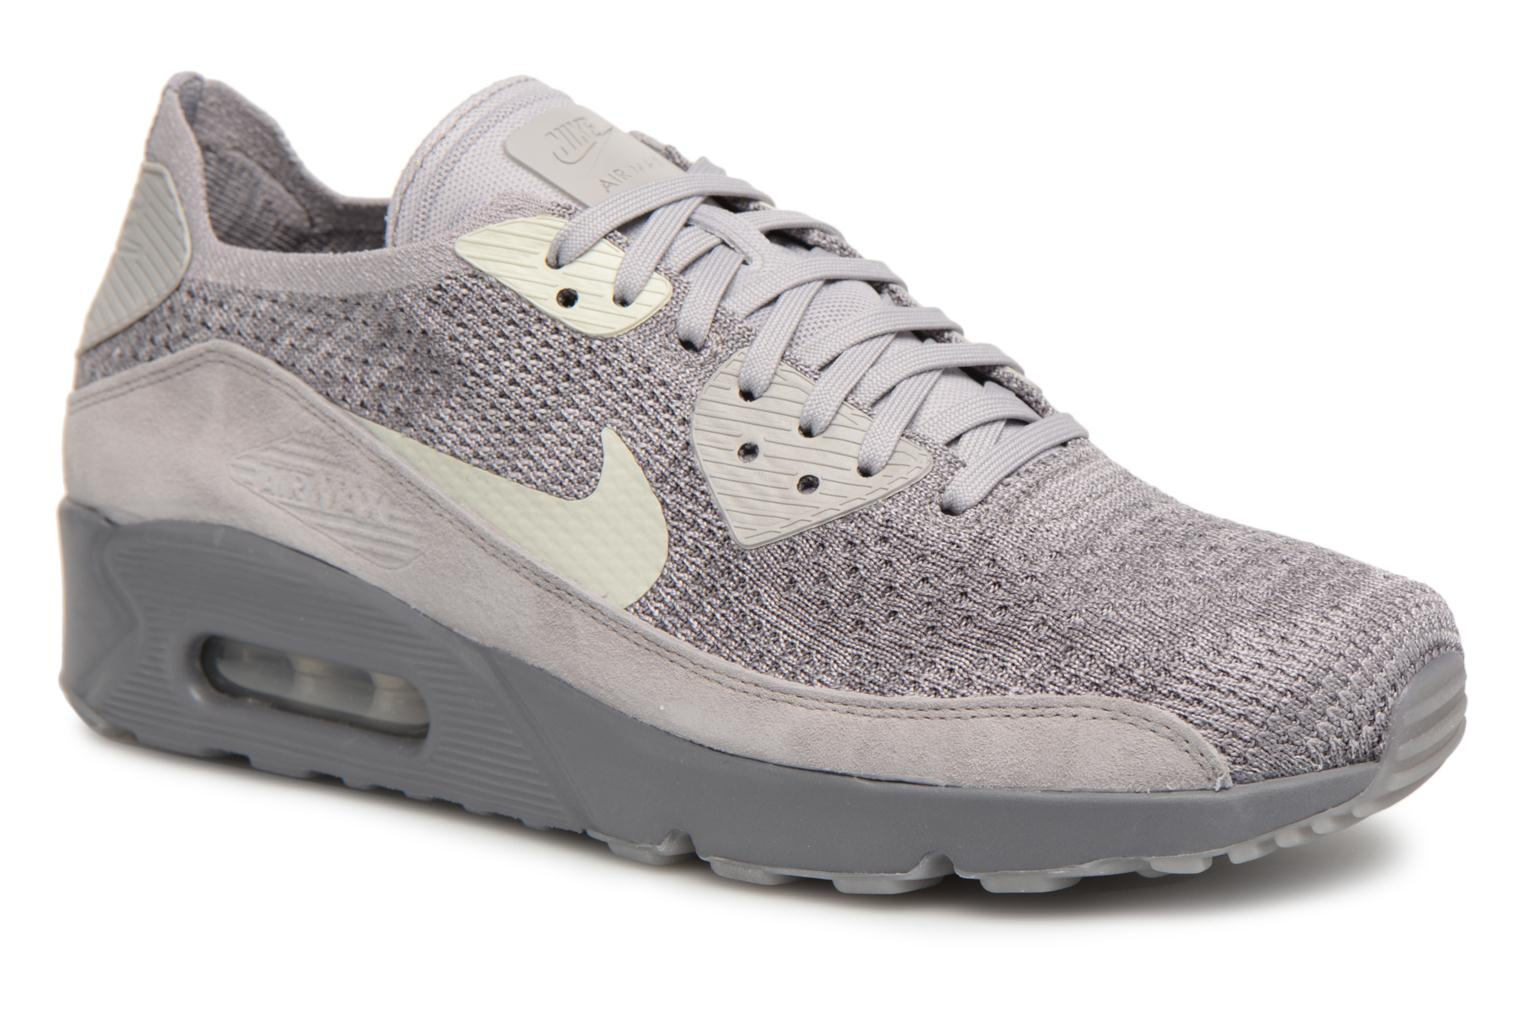 2 Ultra Grey Air Max Nike 0 Bone Gunsmoke Flyknit Atmosphere Light 90 qtZIR8